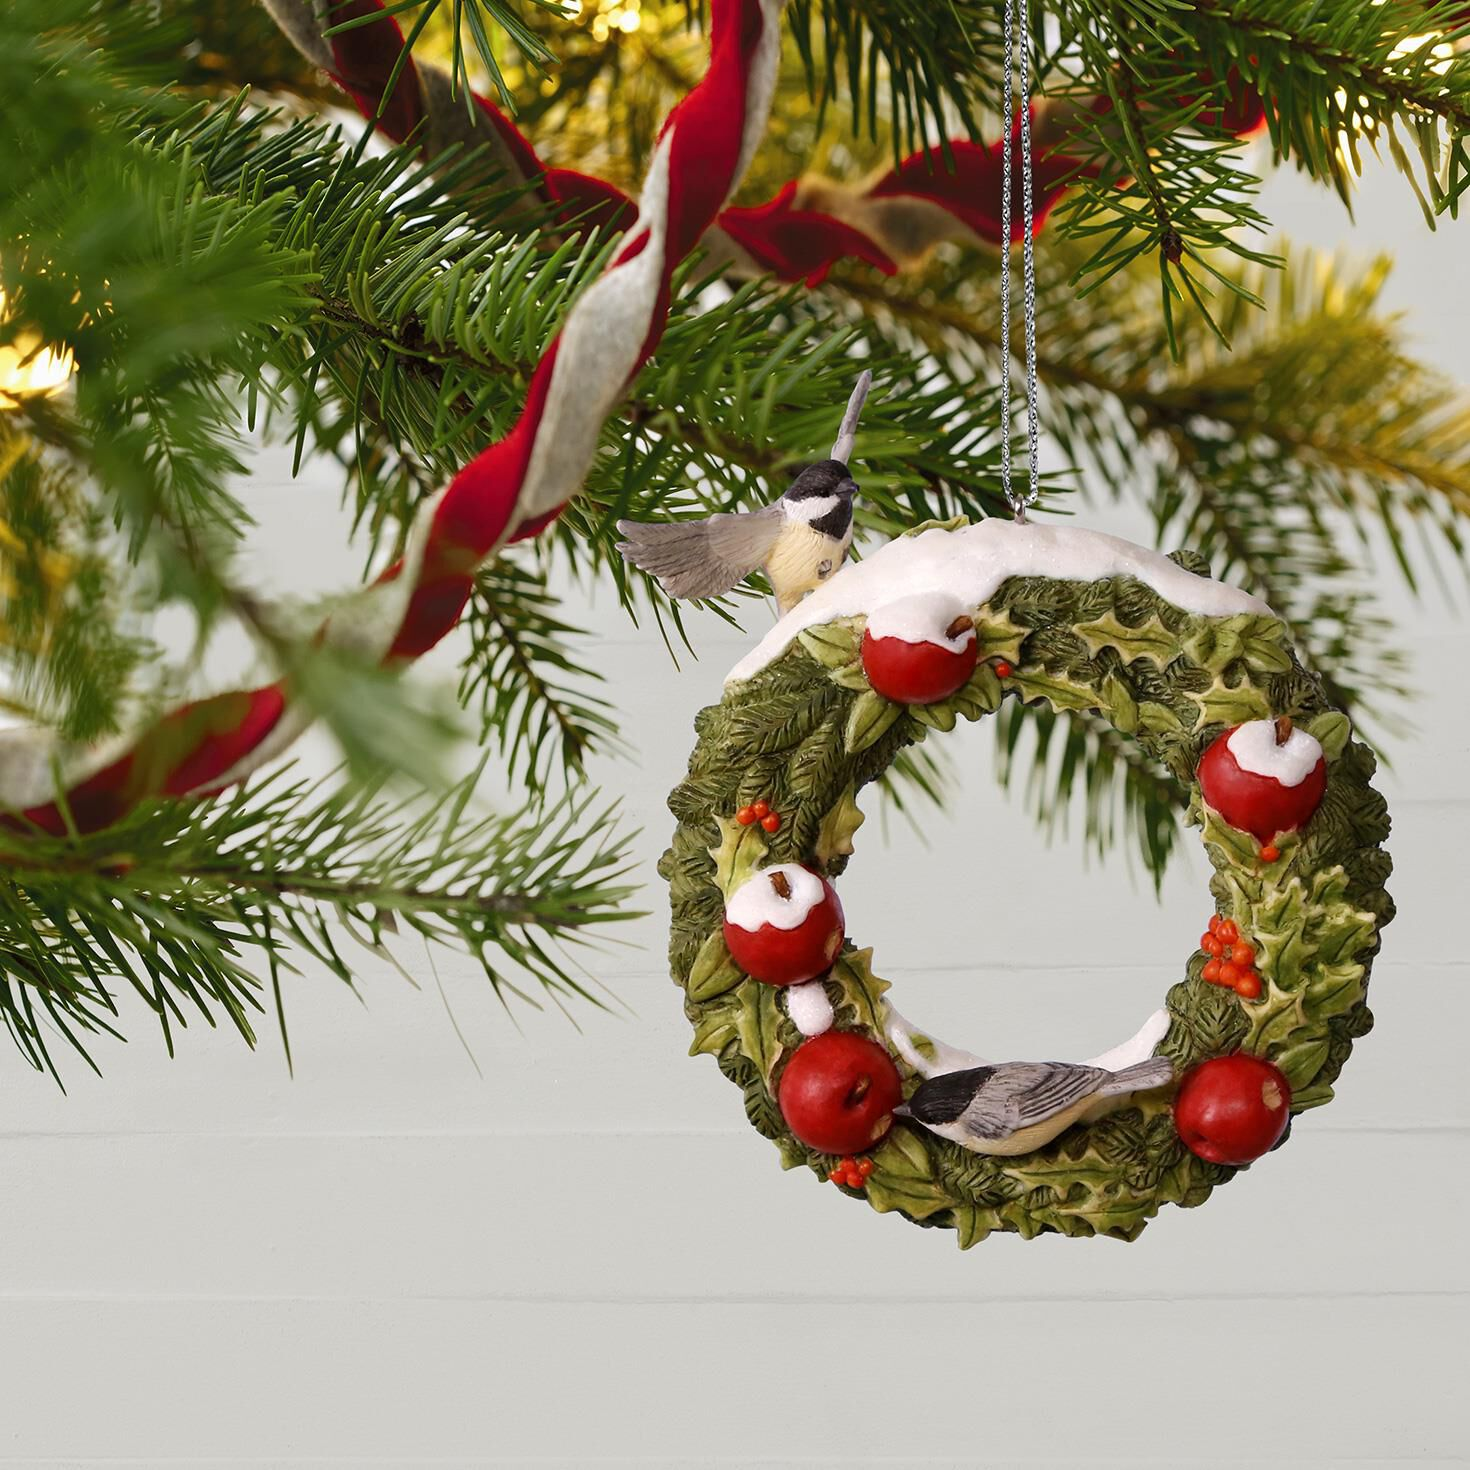 Marjoleinu0027s Garden Welcoming Wreath Ornament Marjoleinu0027s Garden Welcoming  Wreath Ornament ...